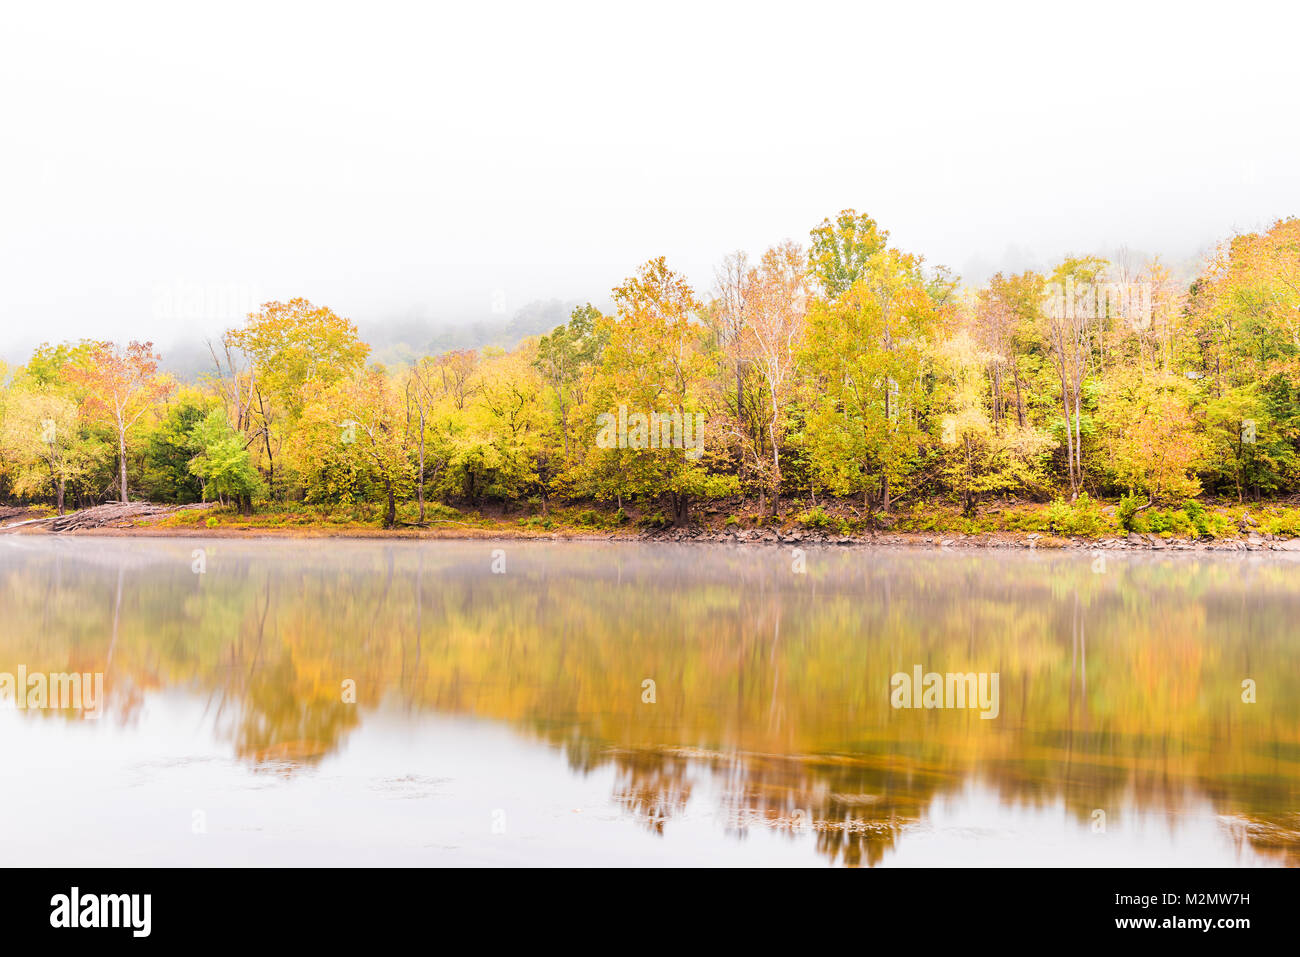 New River Gorge water river lake during autumn golden orange foliage in fall by Grandview with peaceful calm tranquil morning bright mist fog Stock Photo